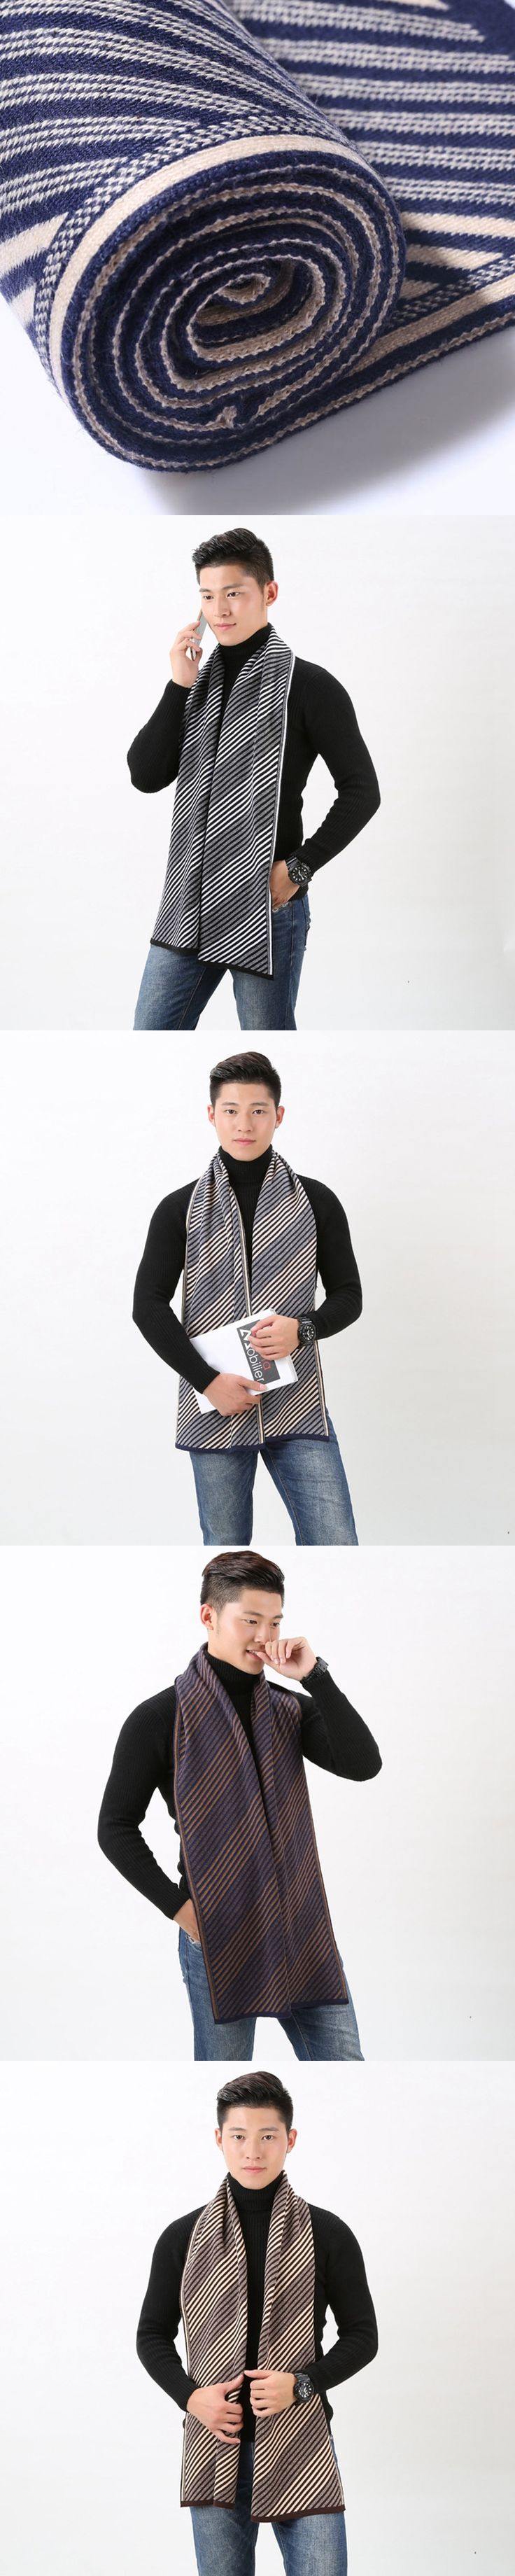 Winter Faux Cashmere Scarf Men 2017 Autumn Hiver Plaid Echarpe Shawl New Fashion Sjaal Heren England Scarves for Man Big Size